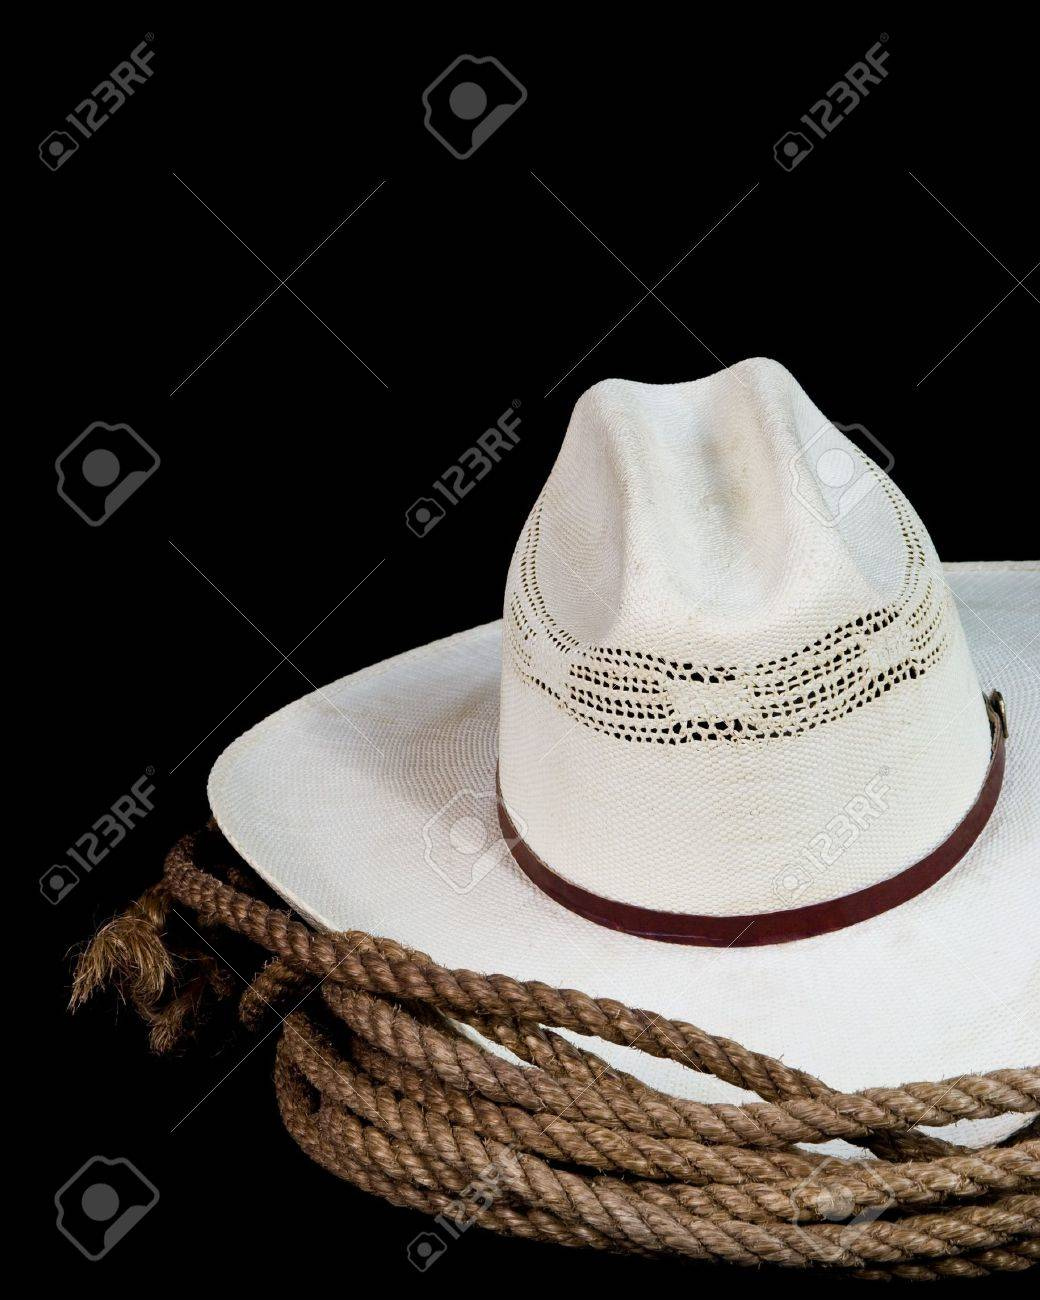 a cowboy hat and lasso on a black background Stock Photo - 9783765